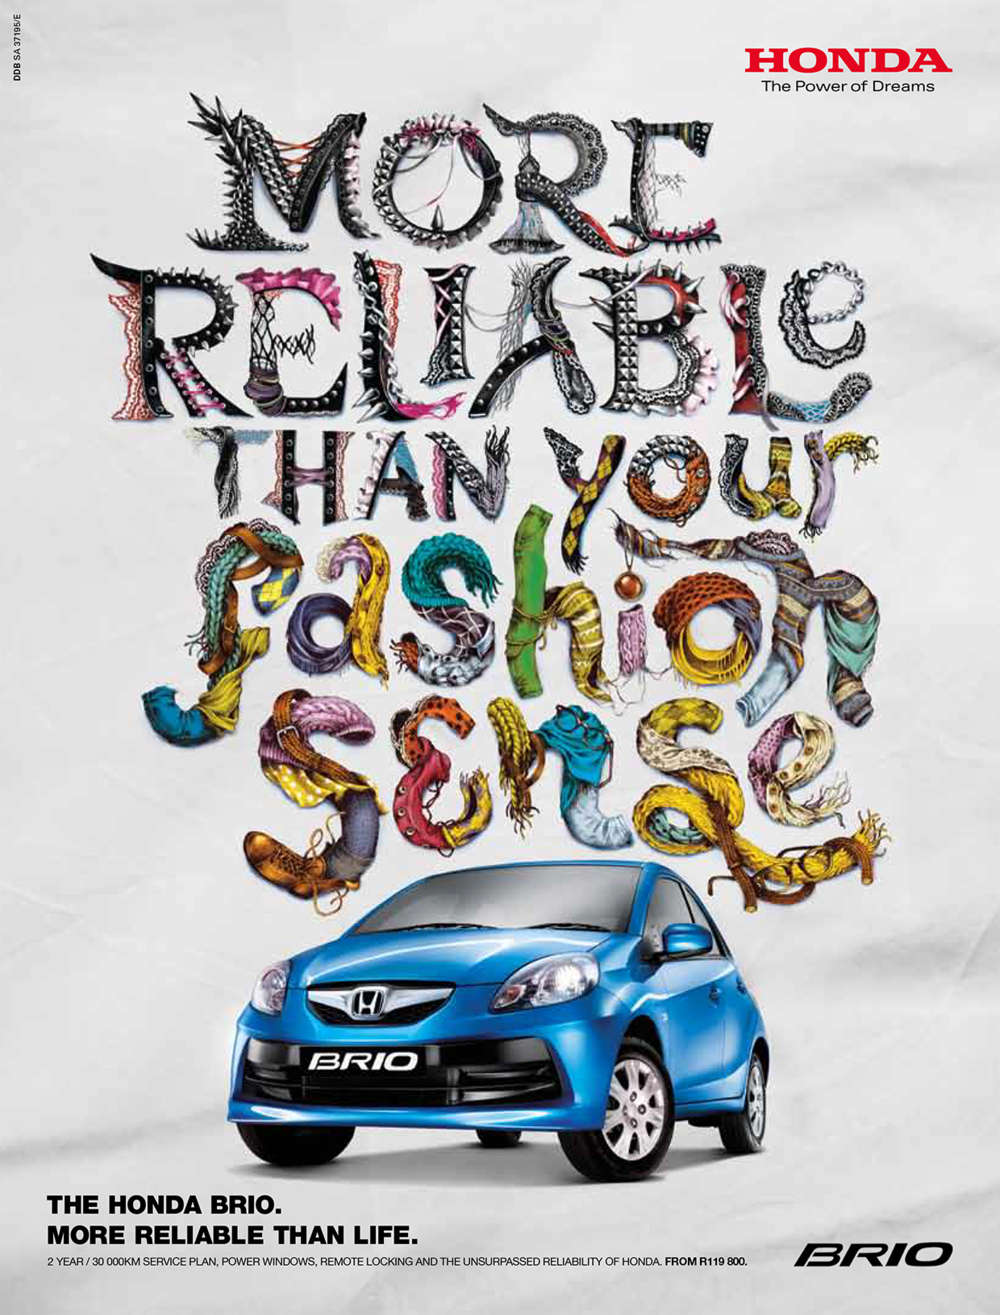 37195 Honda BRIO Fashion_276x210mm.png